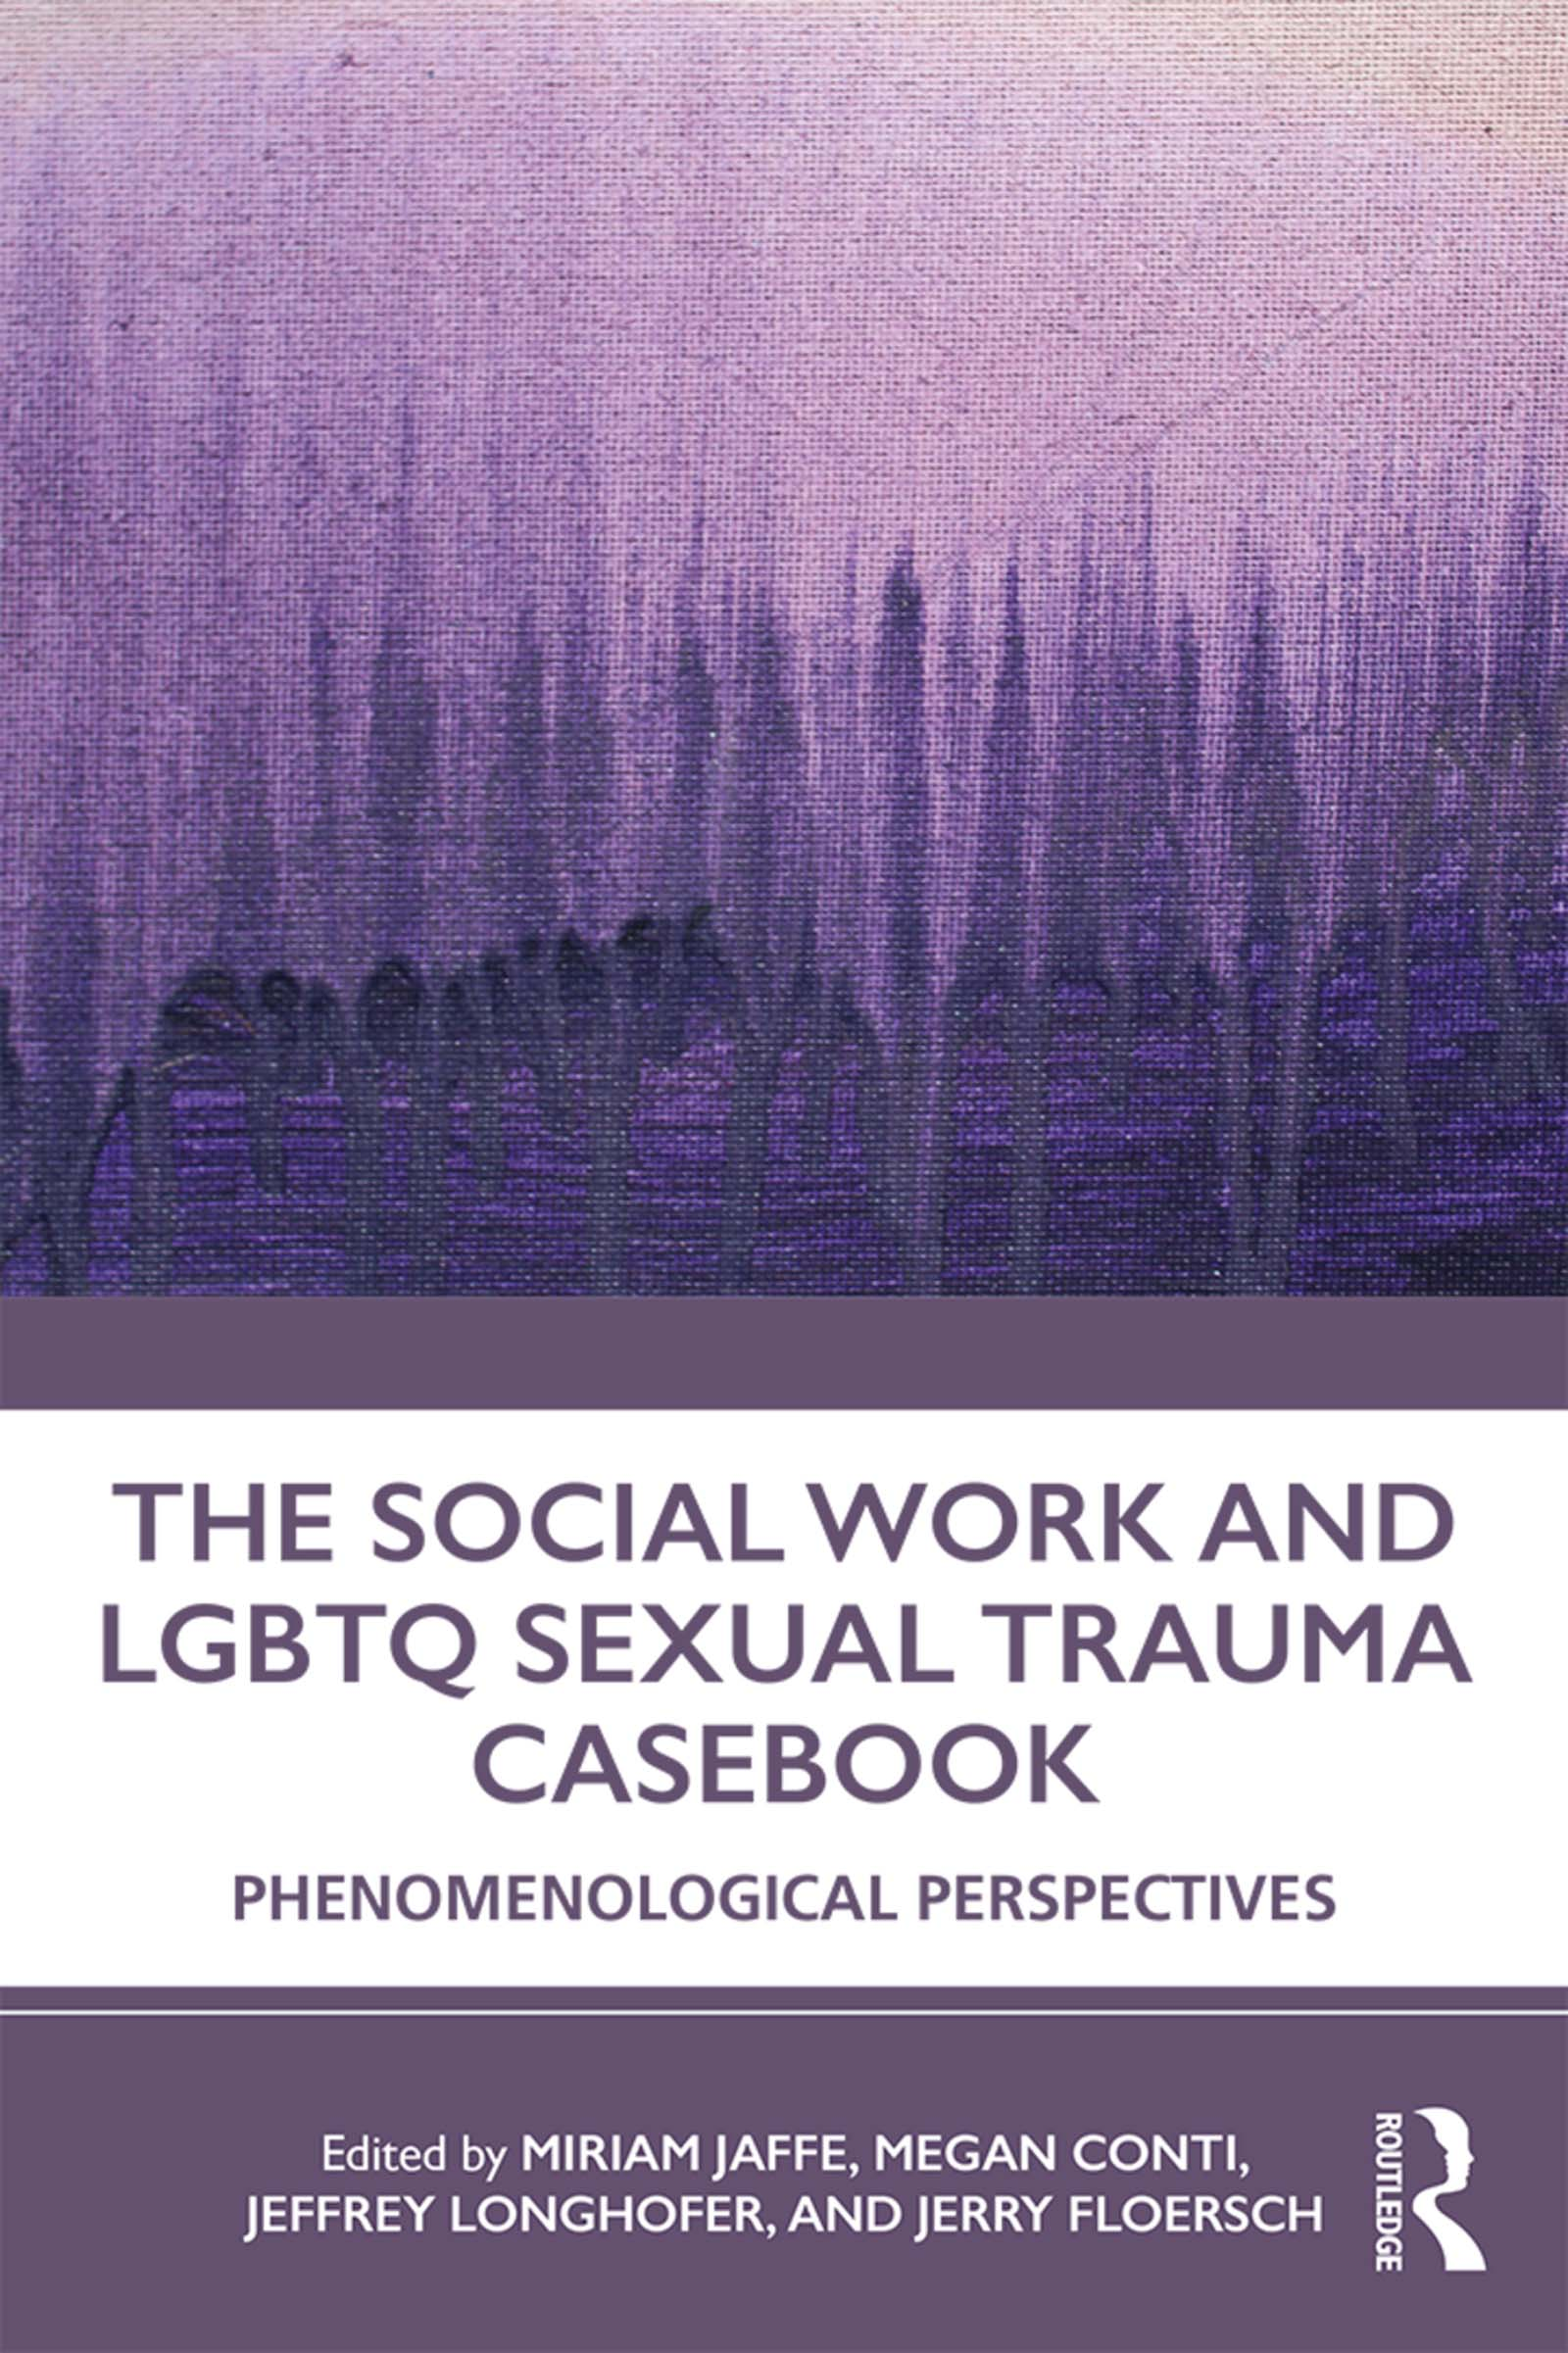 The Social Work and LGBTQ Sexual Trauma Casebook: Phenomenological Perspectives book cover